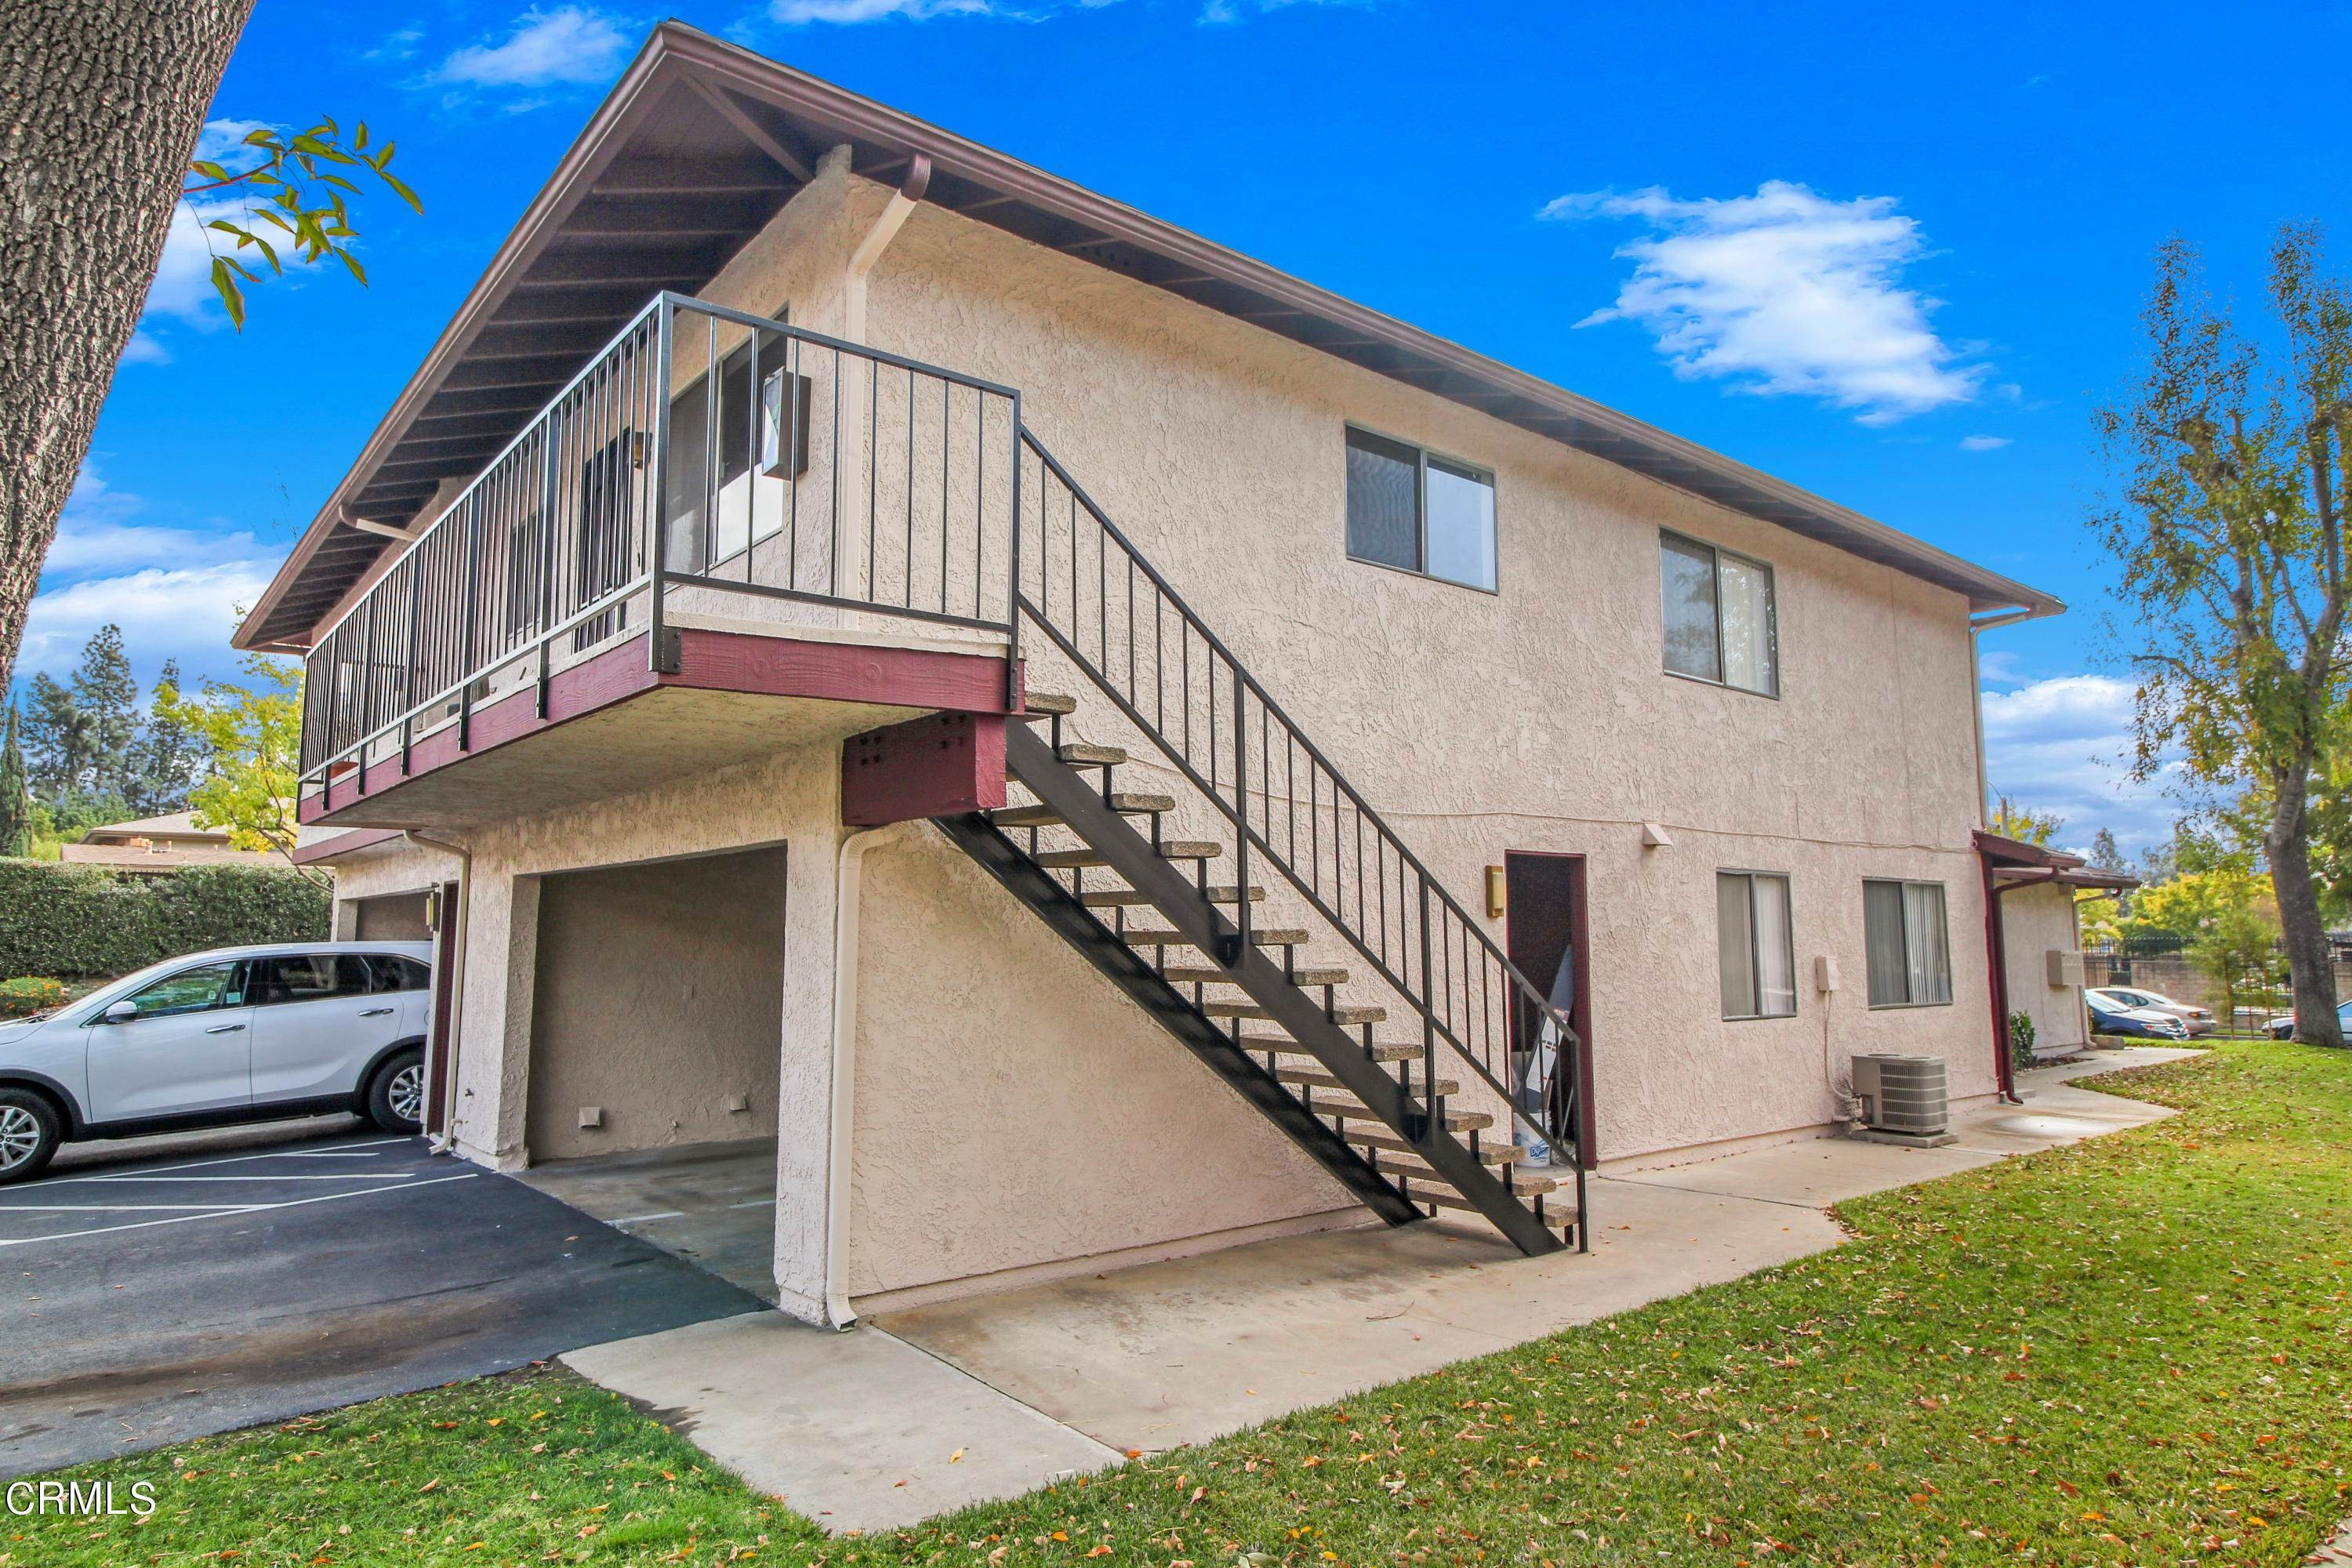 18. Condominiums for Sale at 1105 West Calle De La Luna #4 1105 West Calle De La Luna Azusa, California 91702 United States